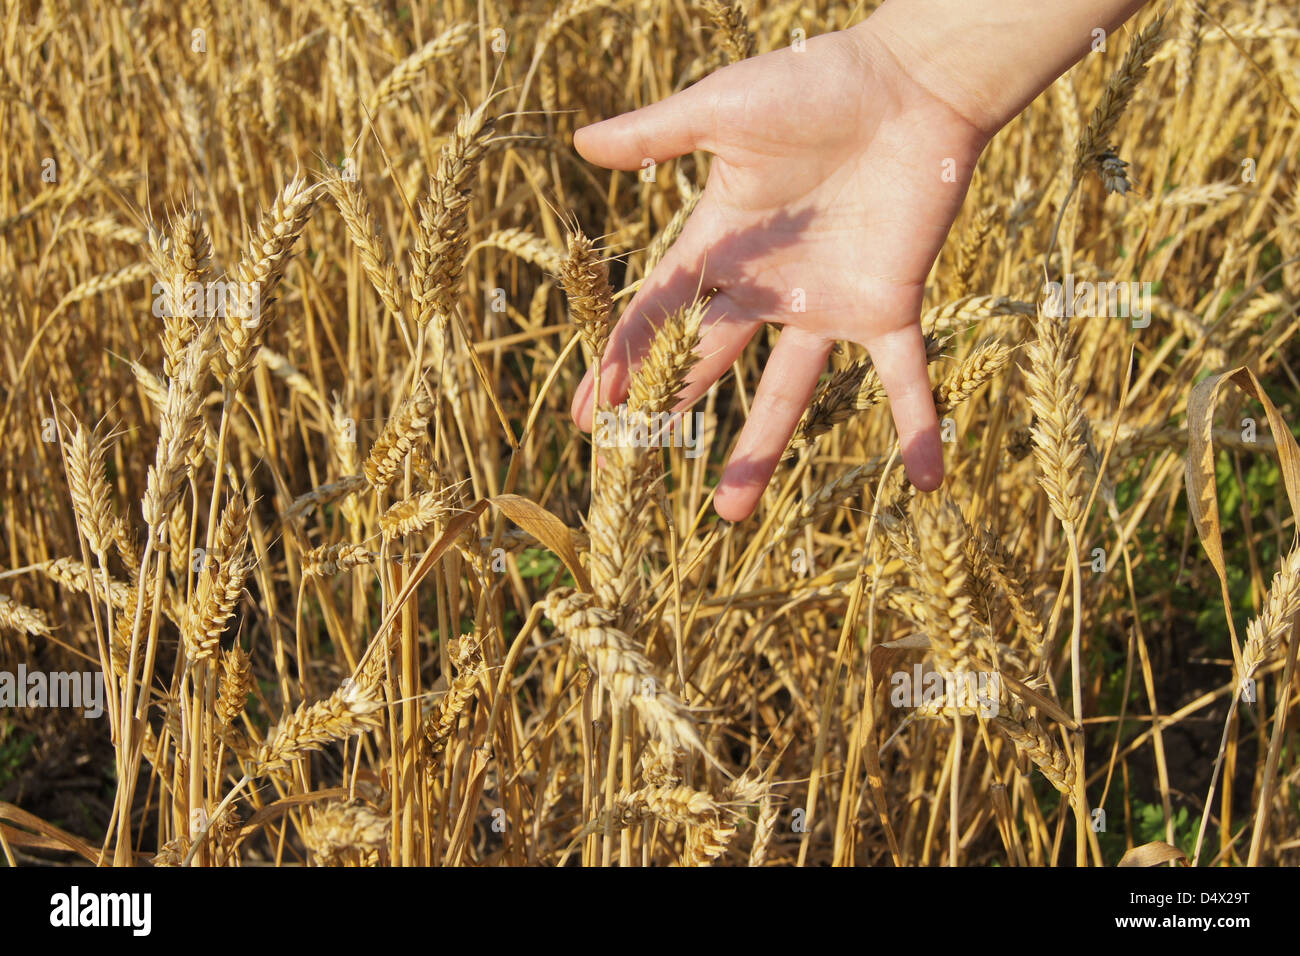 the hand of the person touches wheat cones in a big field in a sunny day - Stock Image